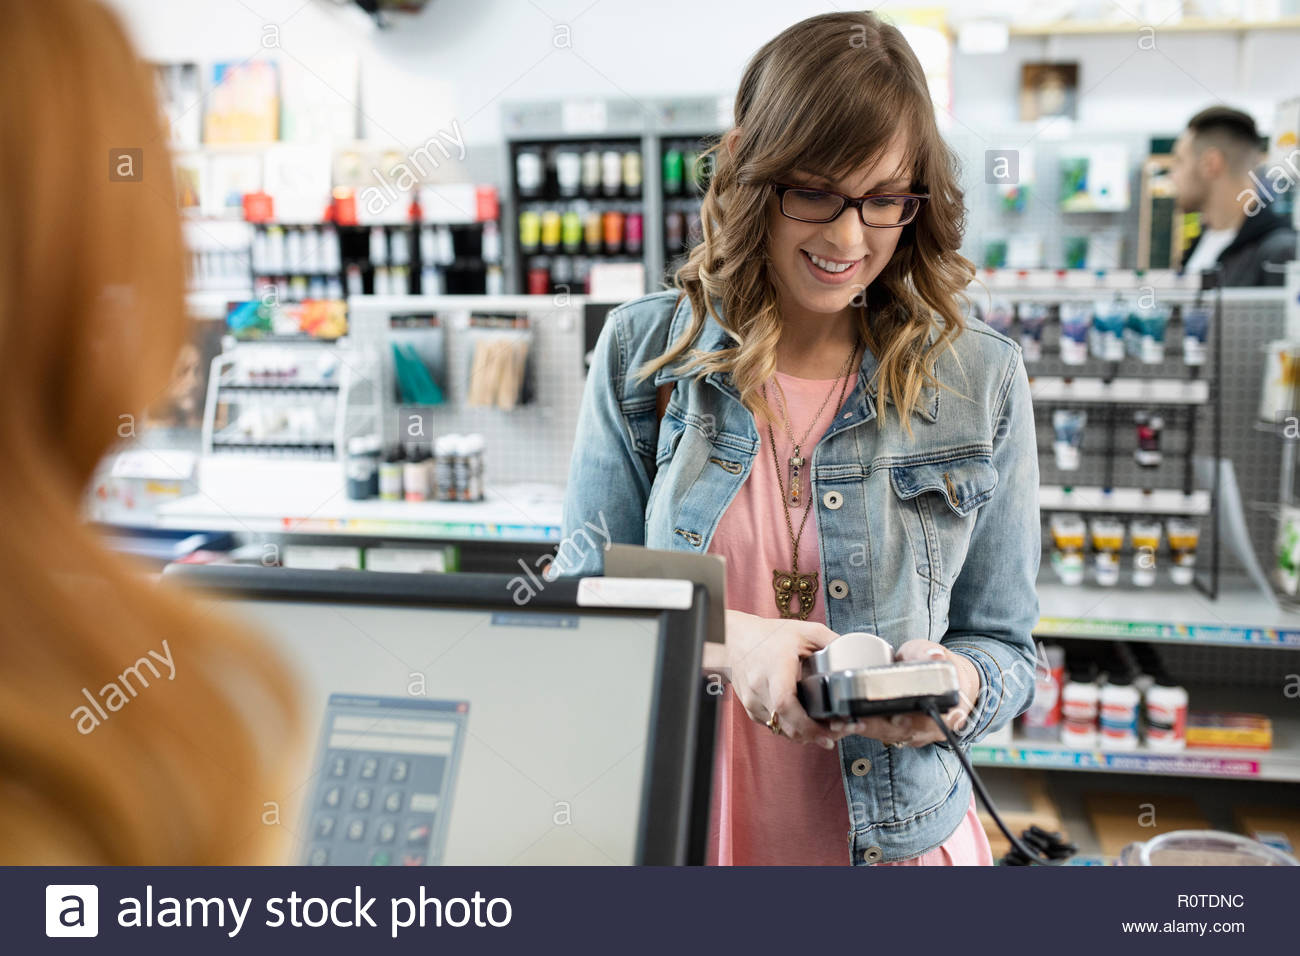 Smiling female shopper using credit card reader pin entry in art supply shop - Stock Image